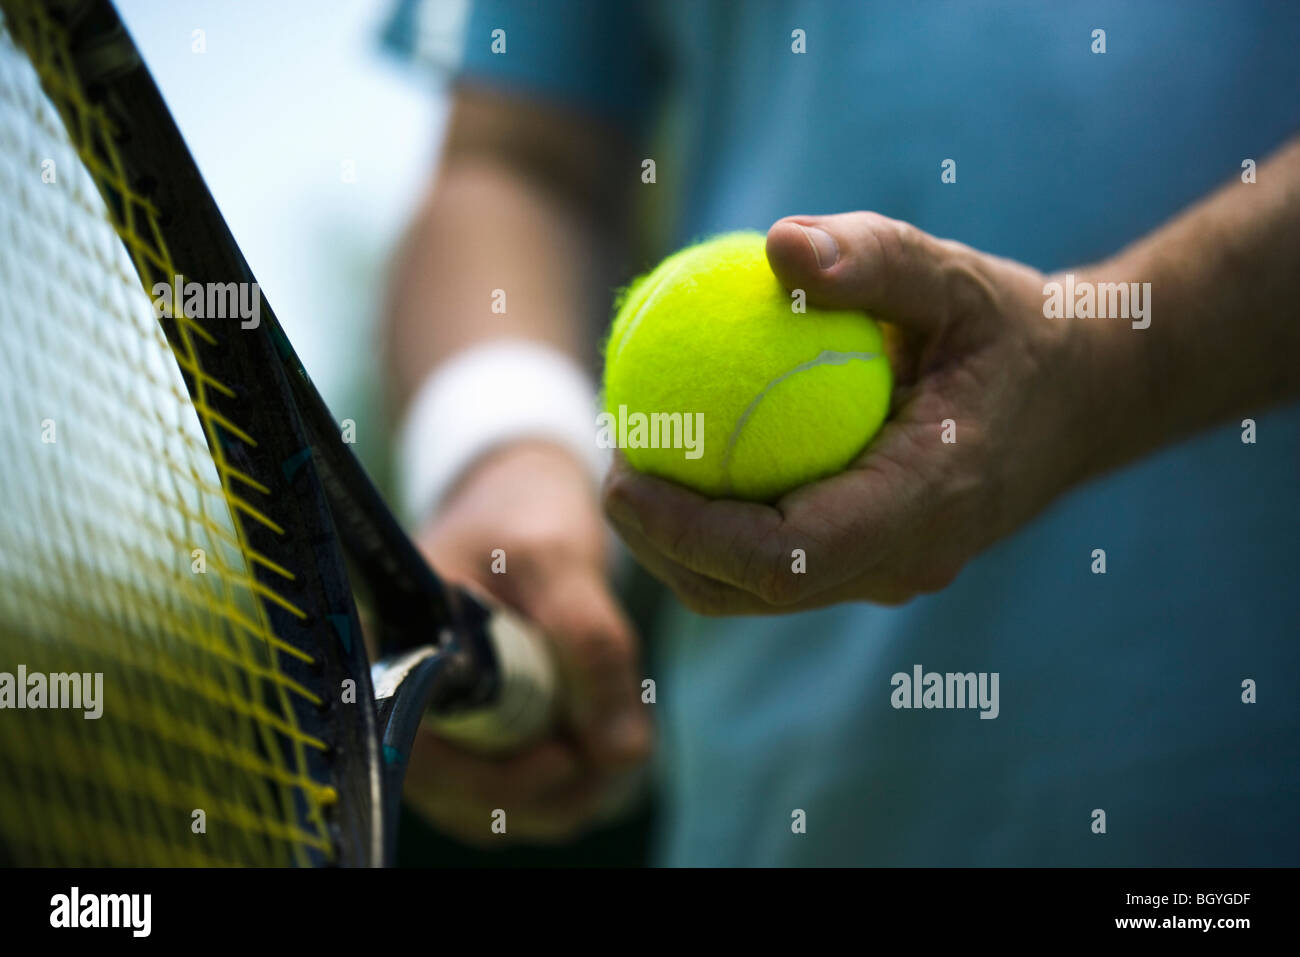 Tennis player preparing to serve, cropped - Stock Image